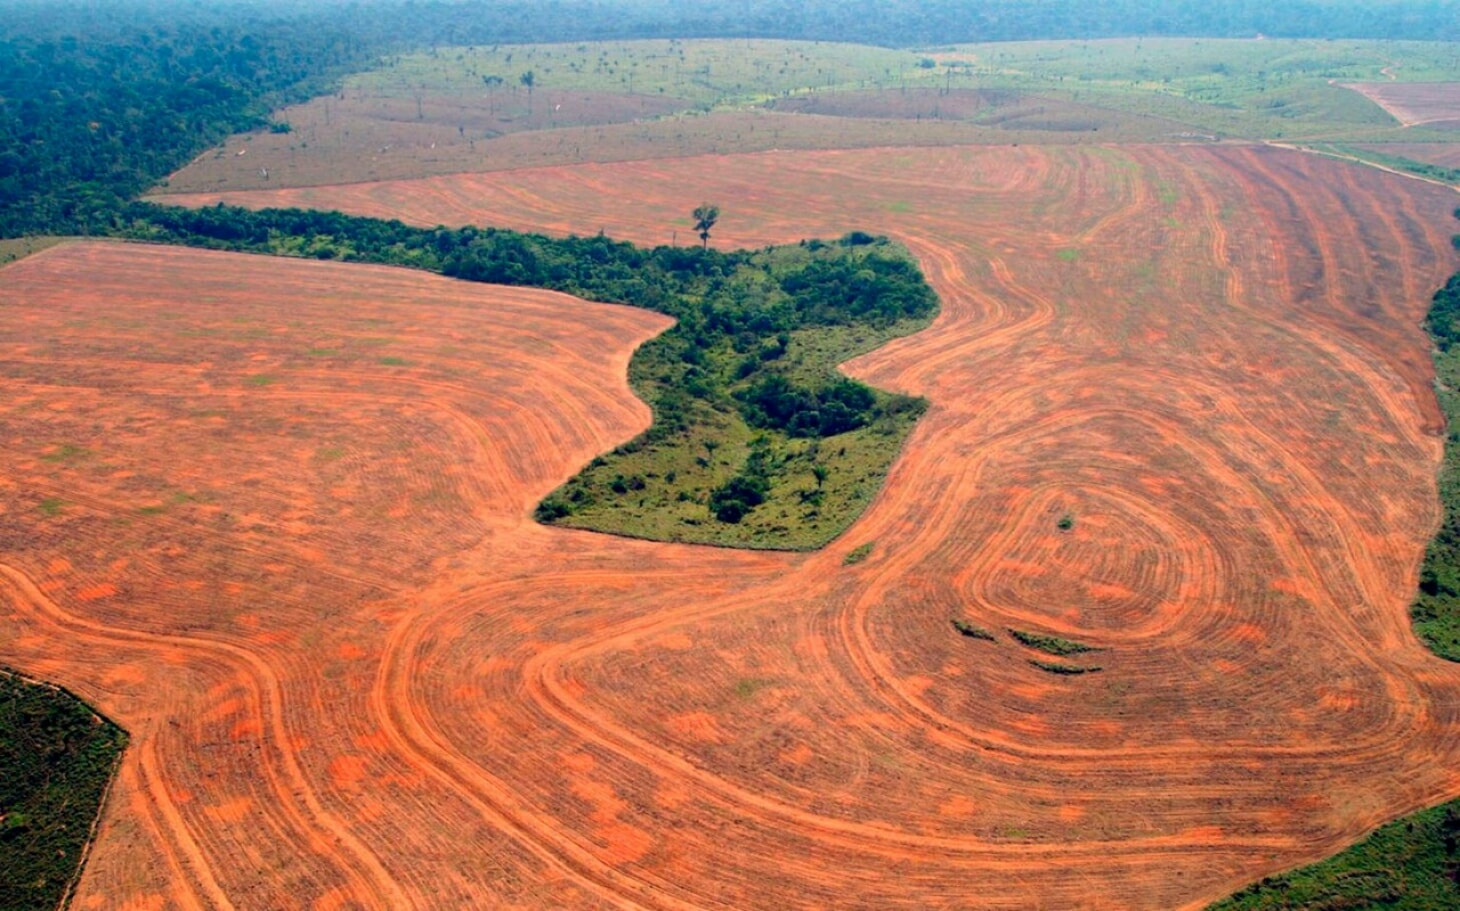 A depiction of the deforestation occurring in the Amazon